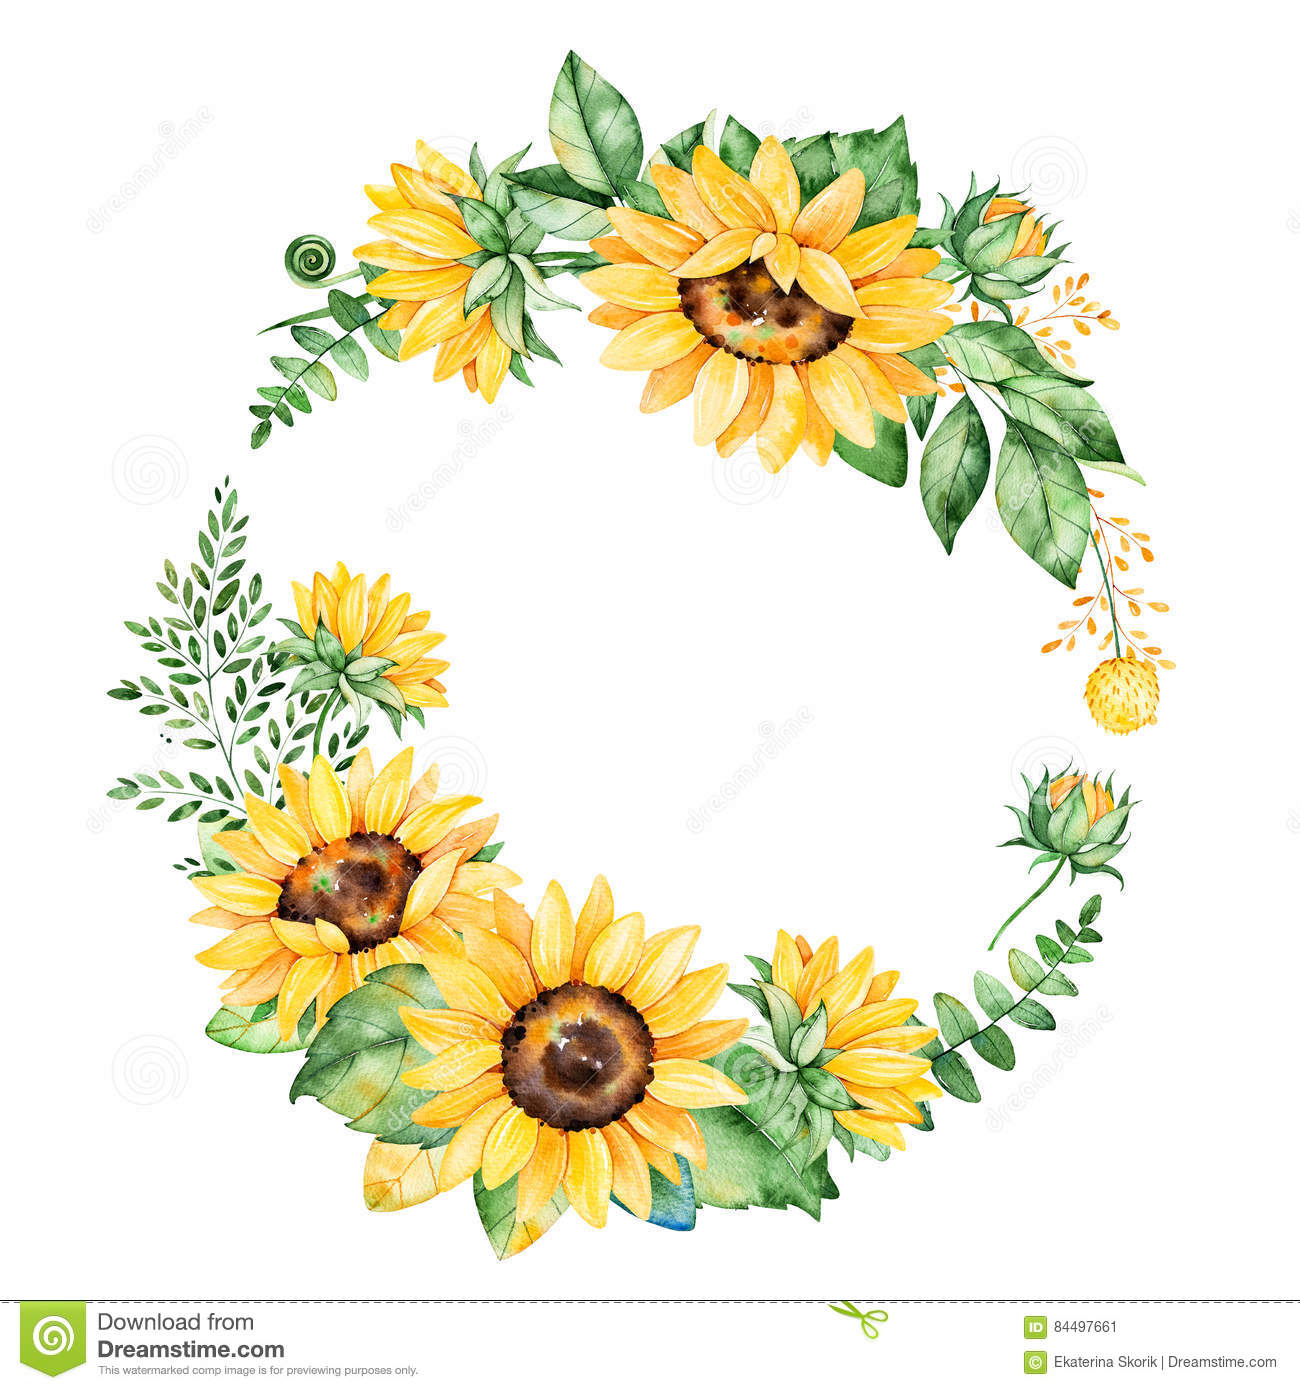 Colorful Floral Wreath With Sunflowersleavesfoliagebranchesfern Leaves And Place For Your